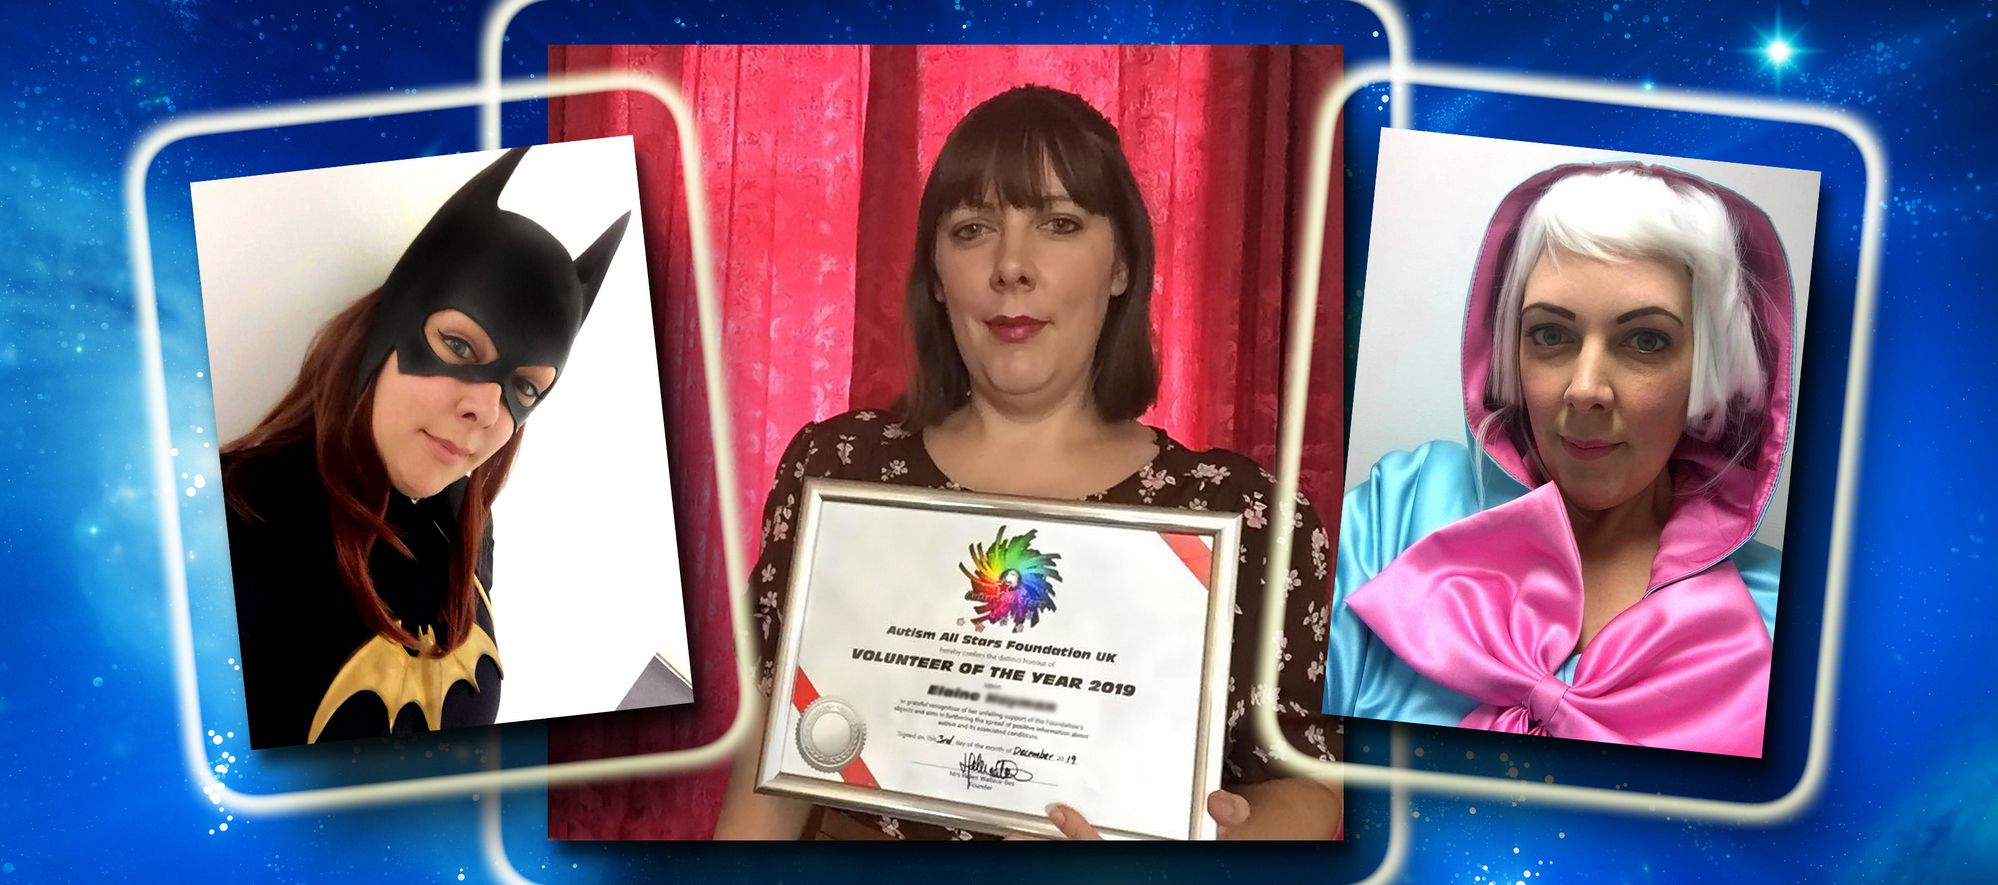 Aspergers, Autism, Autism All Stars, autism awareness, autism acceptance, Volunteer of the Year 2019, Volunteer of the Year, Volunteering, Charity Volunteering, UK Volunteering, Autism Volunteering, Volunteering in Surrey, Volunteering in Sussex,